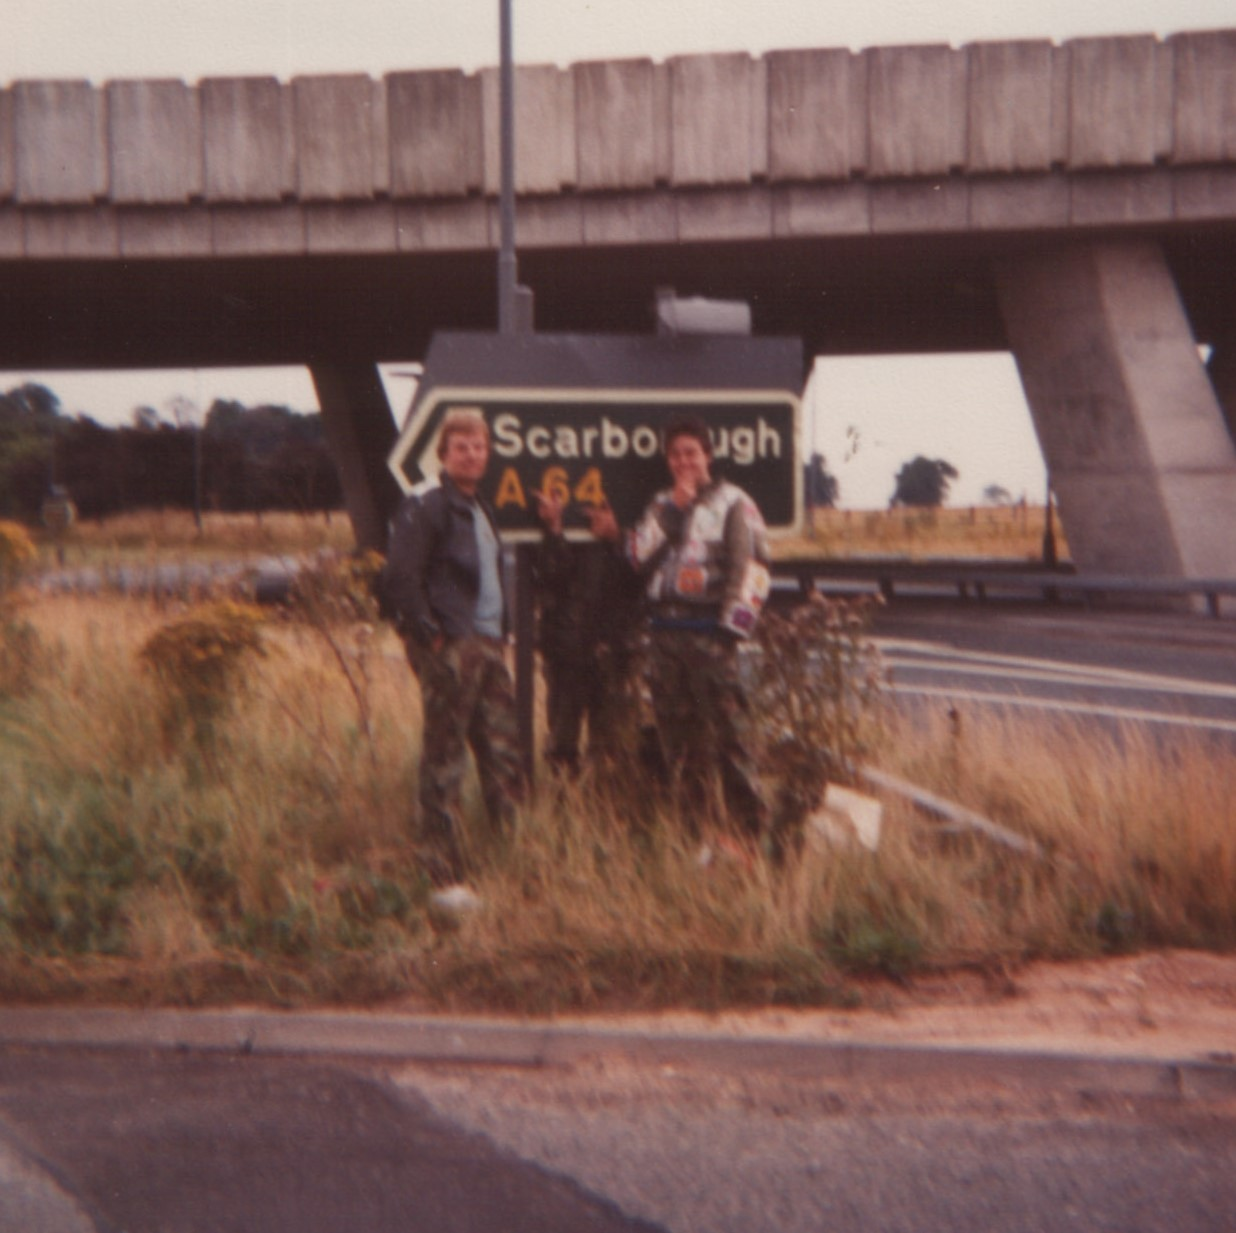 Dizzy and the Midhurst Detours with a Scarborough sign on the A64